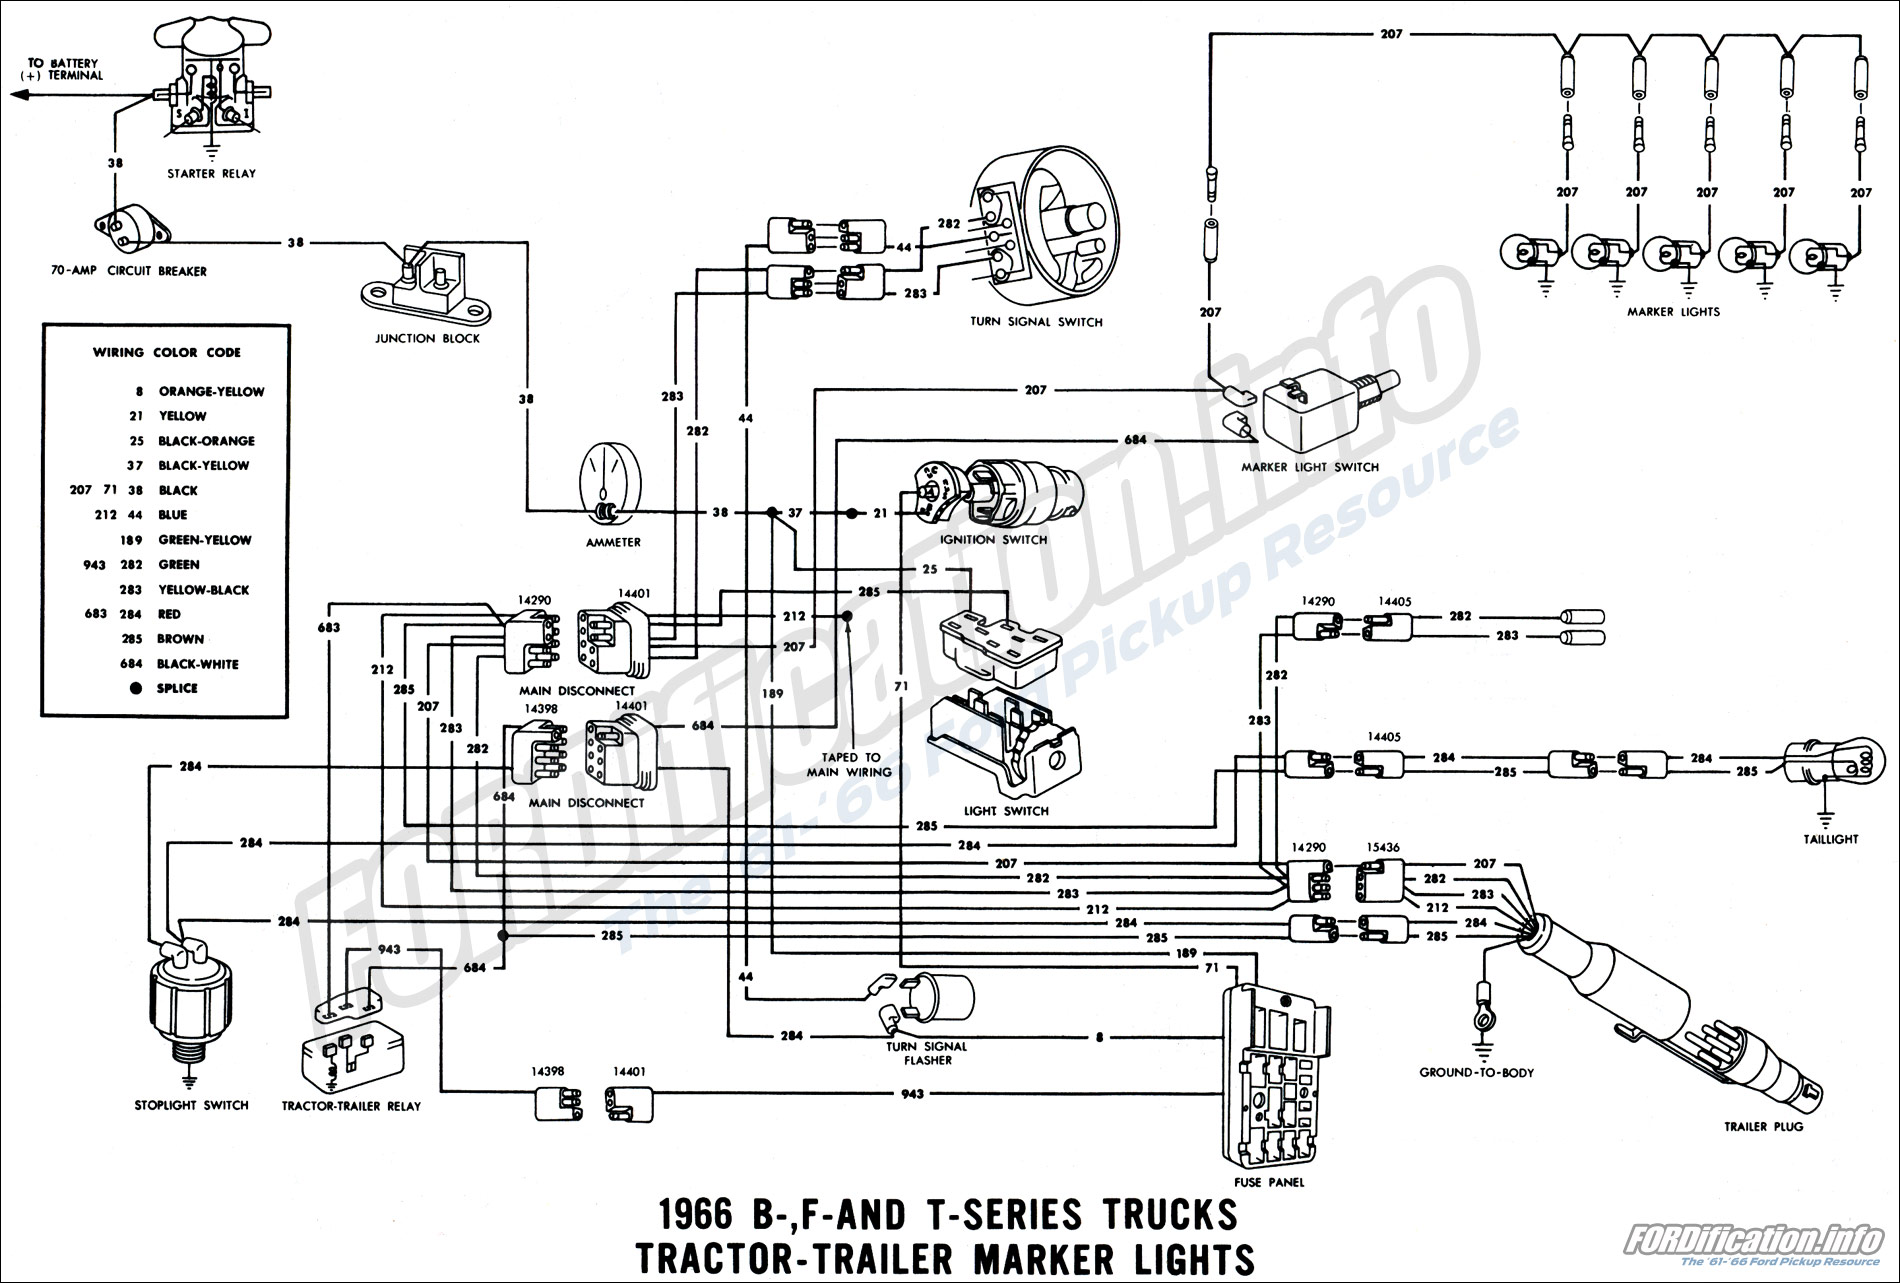 Gm Distributor Wiring Harness